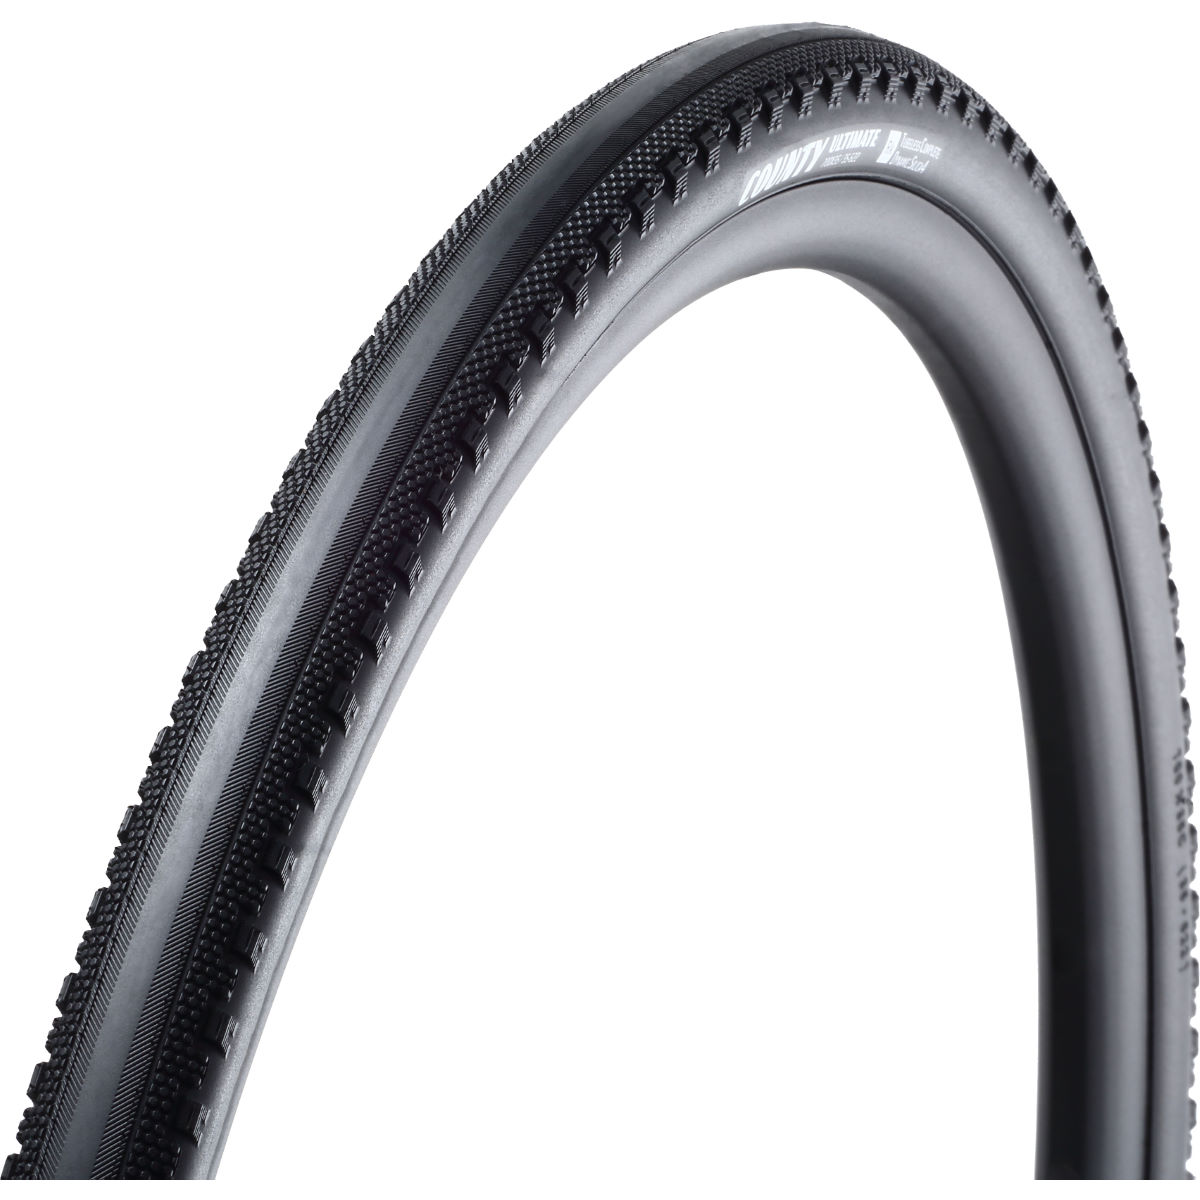 Goodyear Goodyear County Premium Tubeless Cyclocross Tyre   Tyres